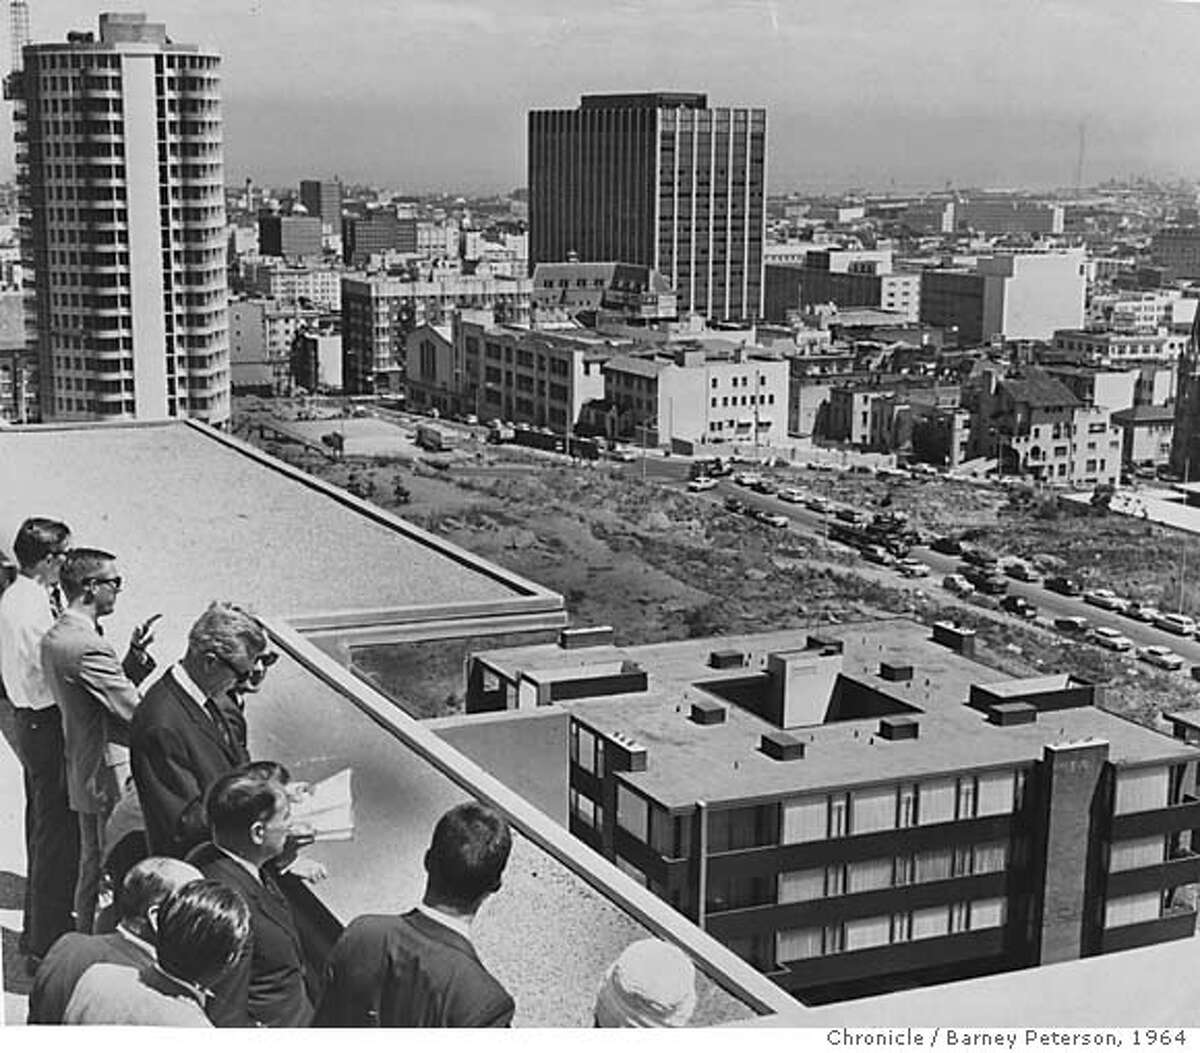 Planing and Redevelopment agency make inspection of new buildings from Laguna Eichler Apartments near Federal Building. Barney Peterson, Chronicle / Barney Peterson, 1964 Photographer